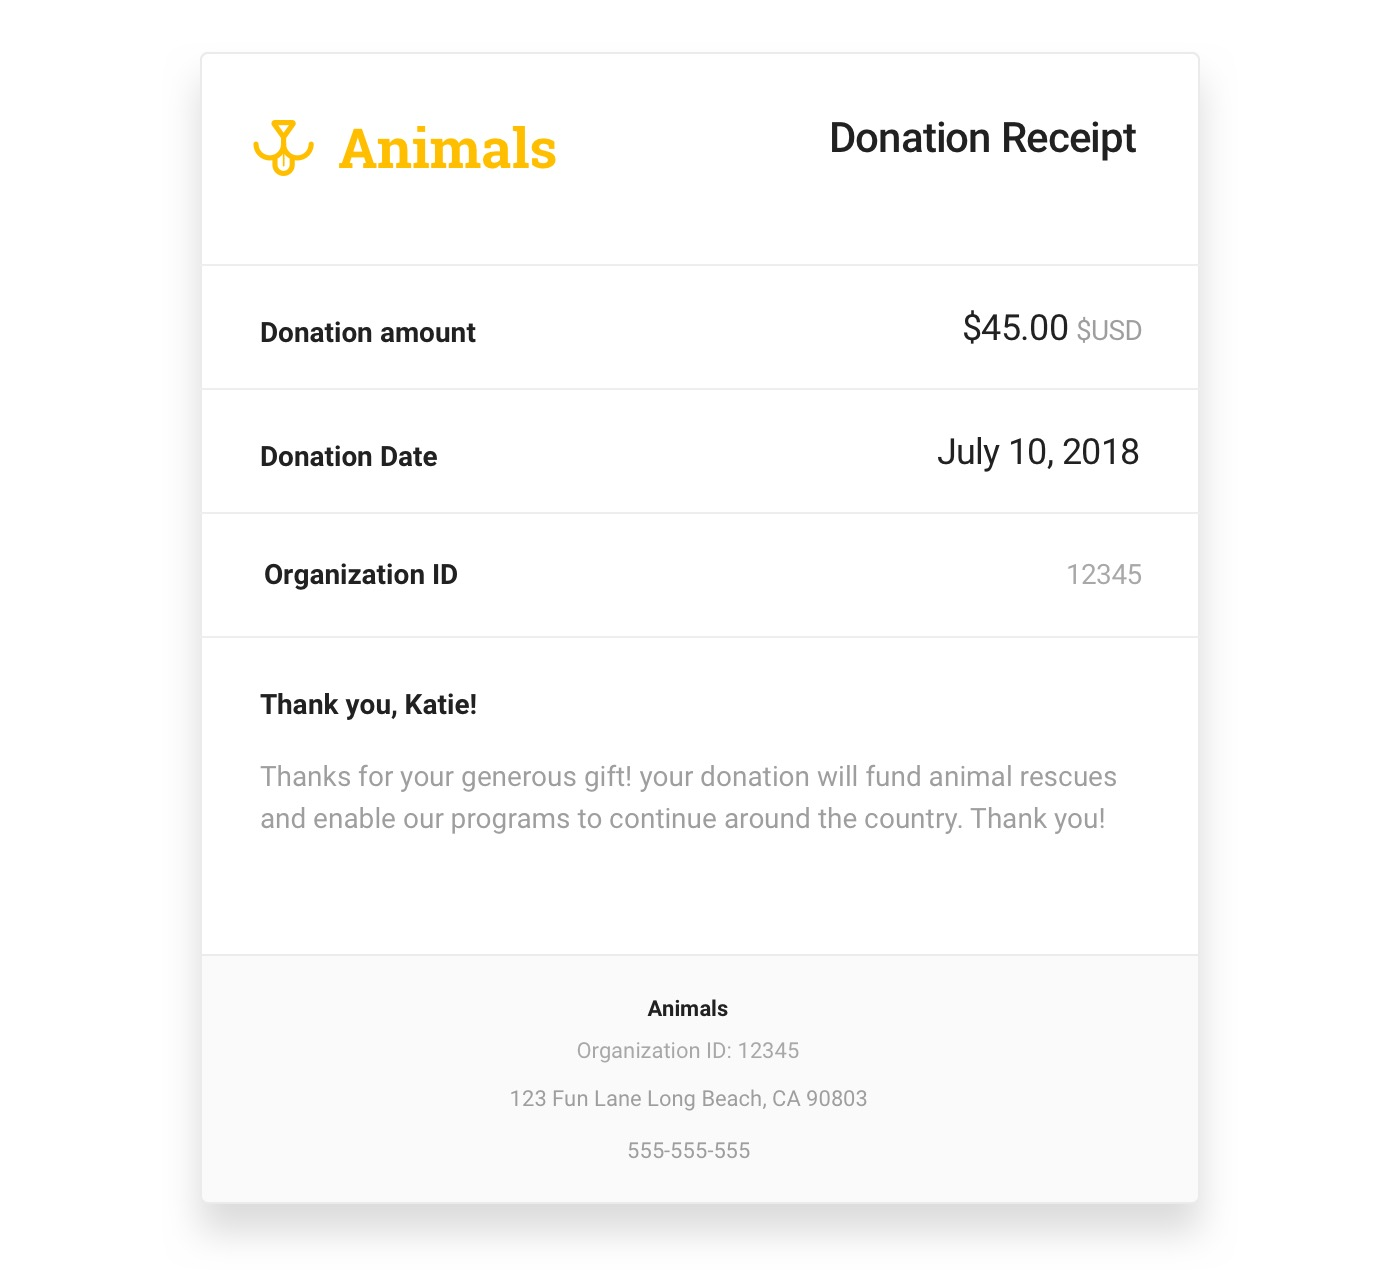 Donation receipt with black text on a white background and yellow logo in the top left corner